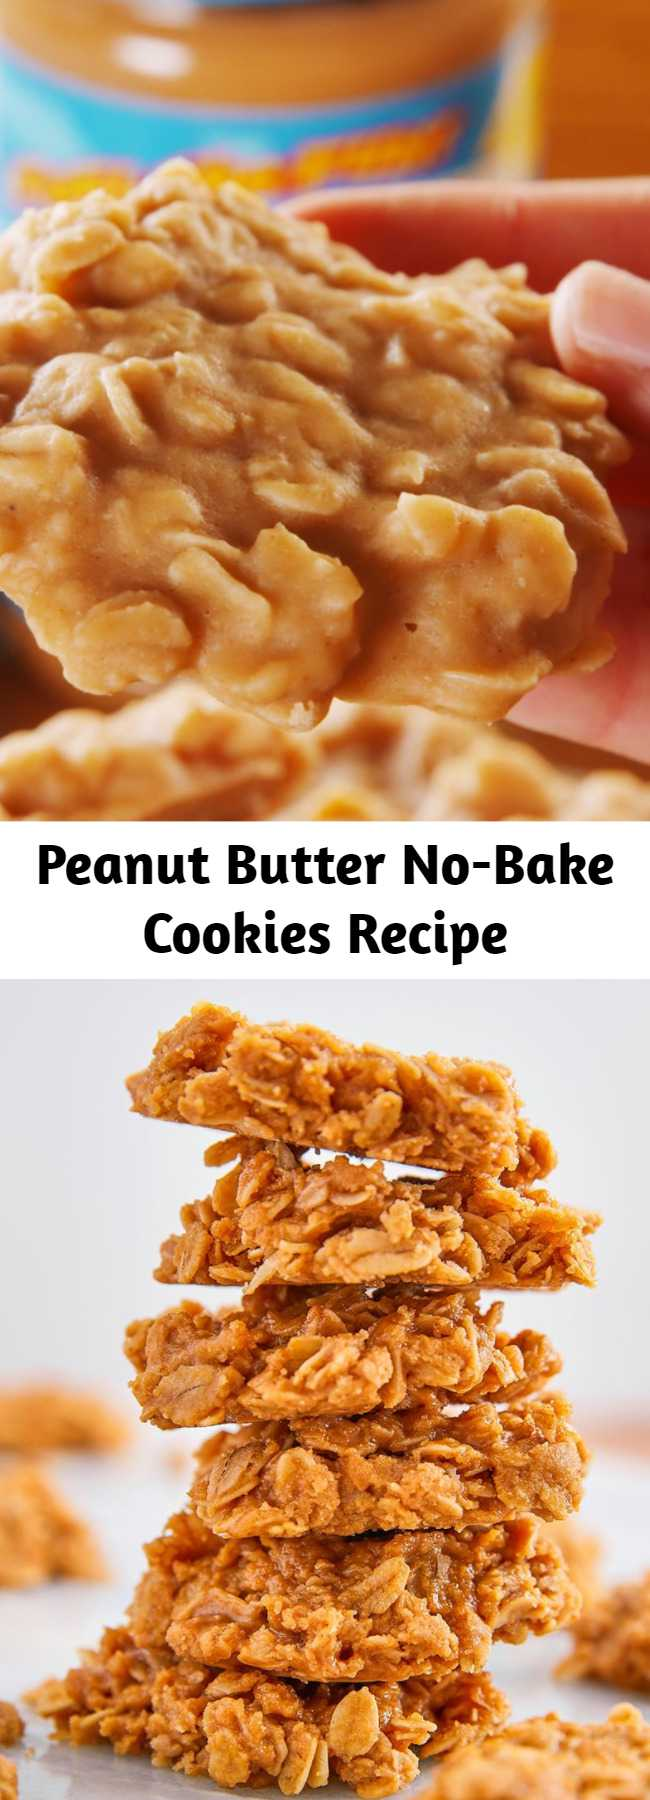 Peanut Butter No-Bake Cookies Recipe - Loaded with sweet-salty peanut butter and chewy oats, these cookies are perfect for when you're craving dessert but don't have the time or patience to wait for your oven to preheat. The texture is a bit more fudgy than your average cookie, and WE'RE OBSESSED. #easy #recipe #nobake #oatmeal #peanut #peanutbutter #butter #PB #healthy #salt #vanilla